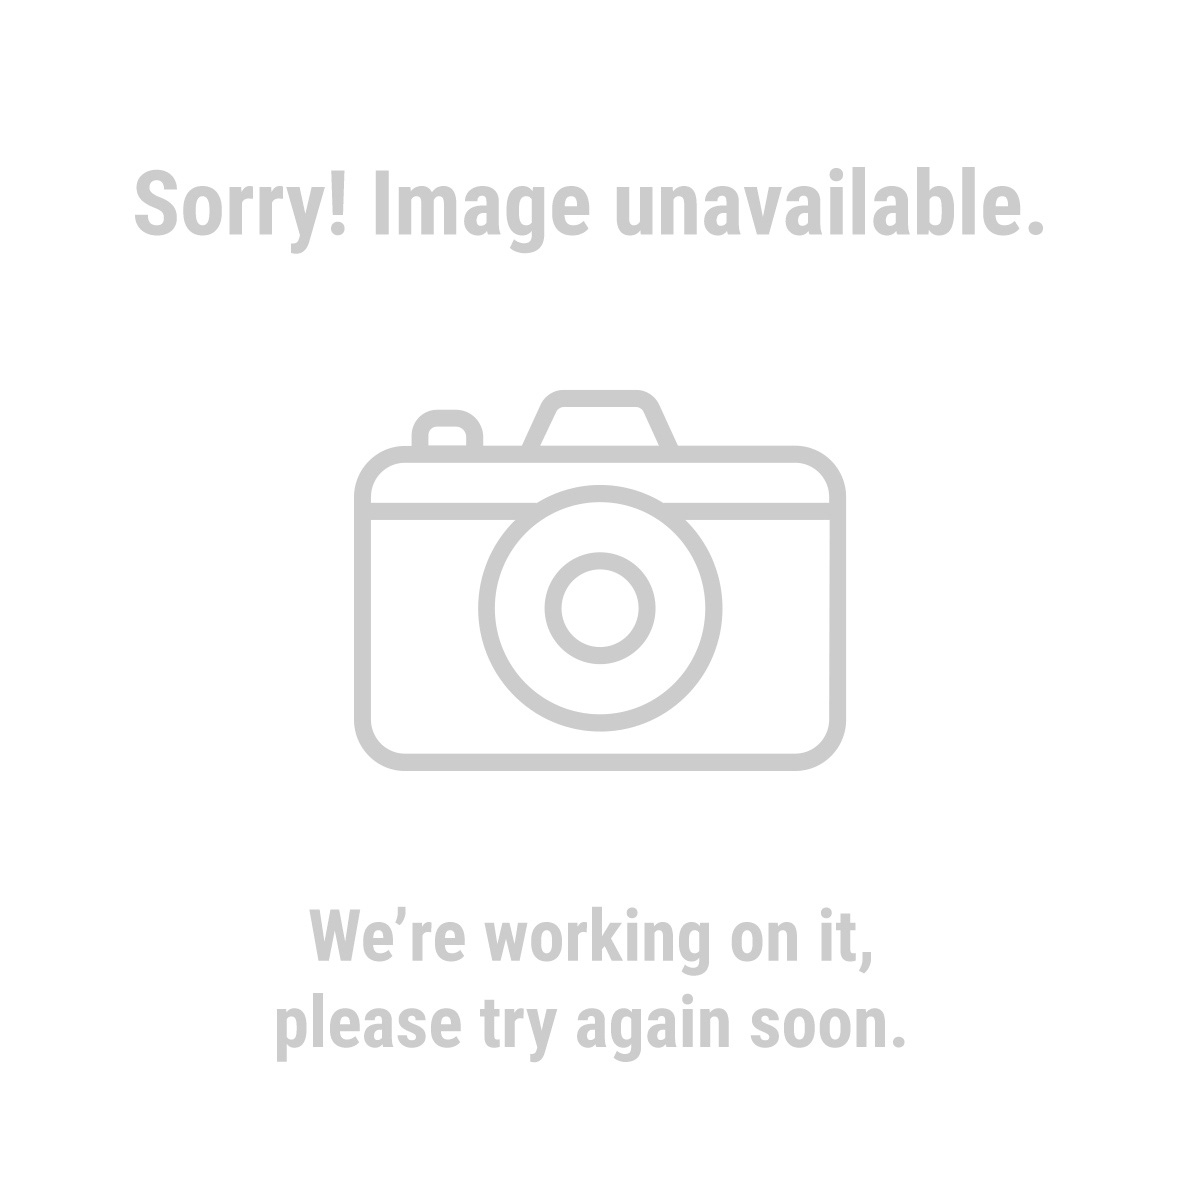 Gordon 96200 12 LED Hand Crank Lantern